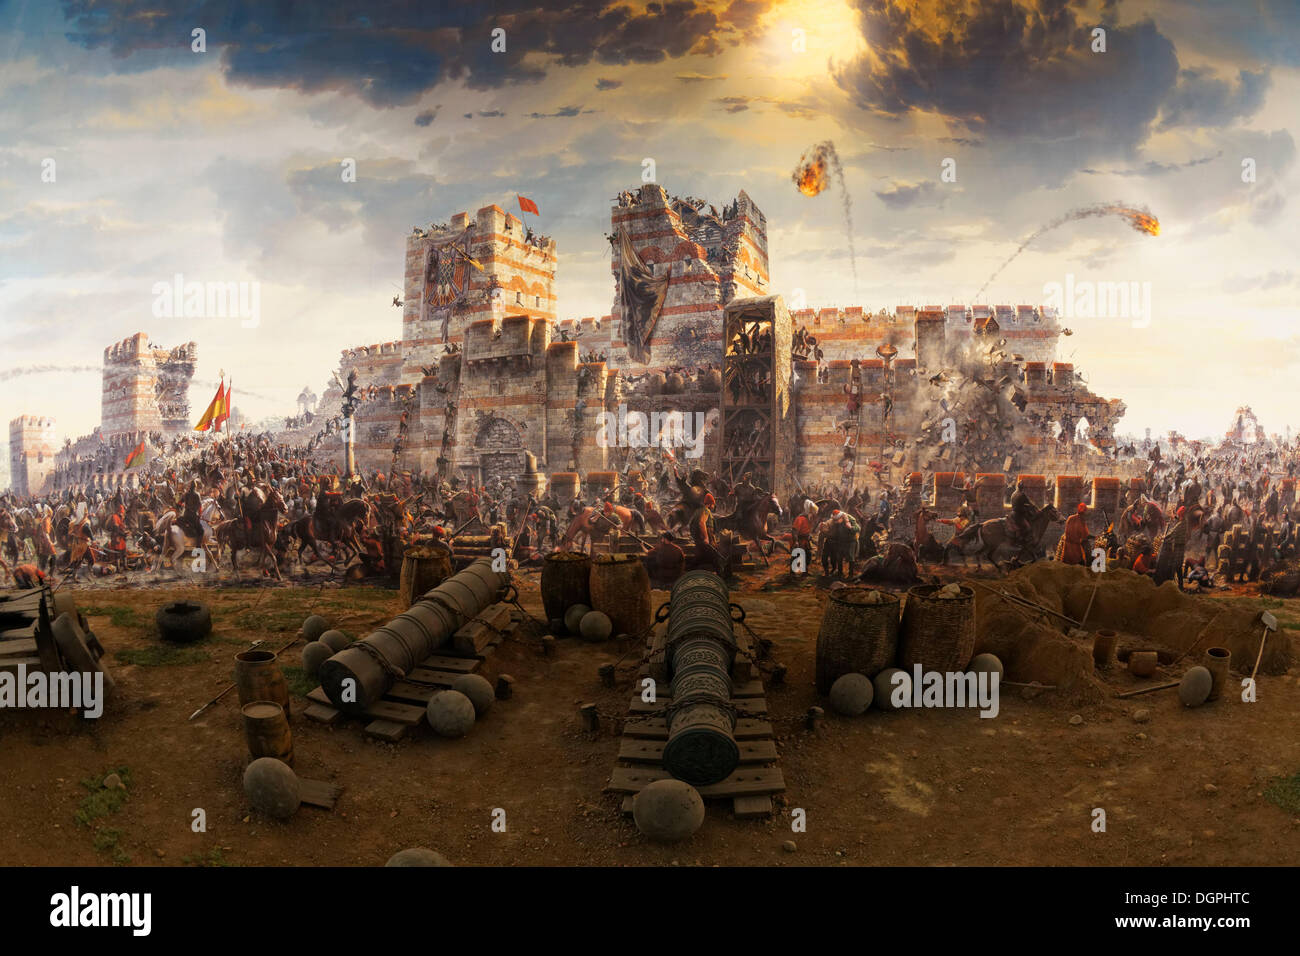 Painting of the conquest of Constantinople in 1453 by the Ottomans under  Sultan Fatih Sultan Mehmed, Museum Panorama 1453 in